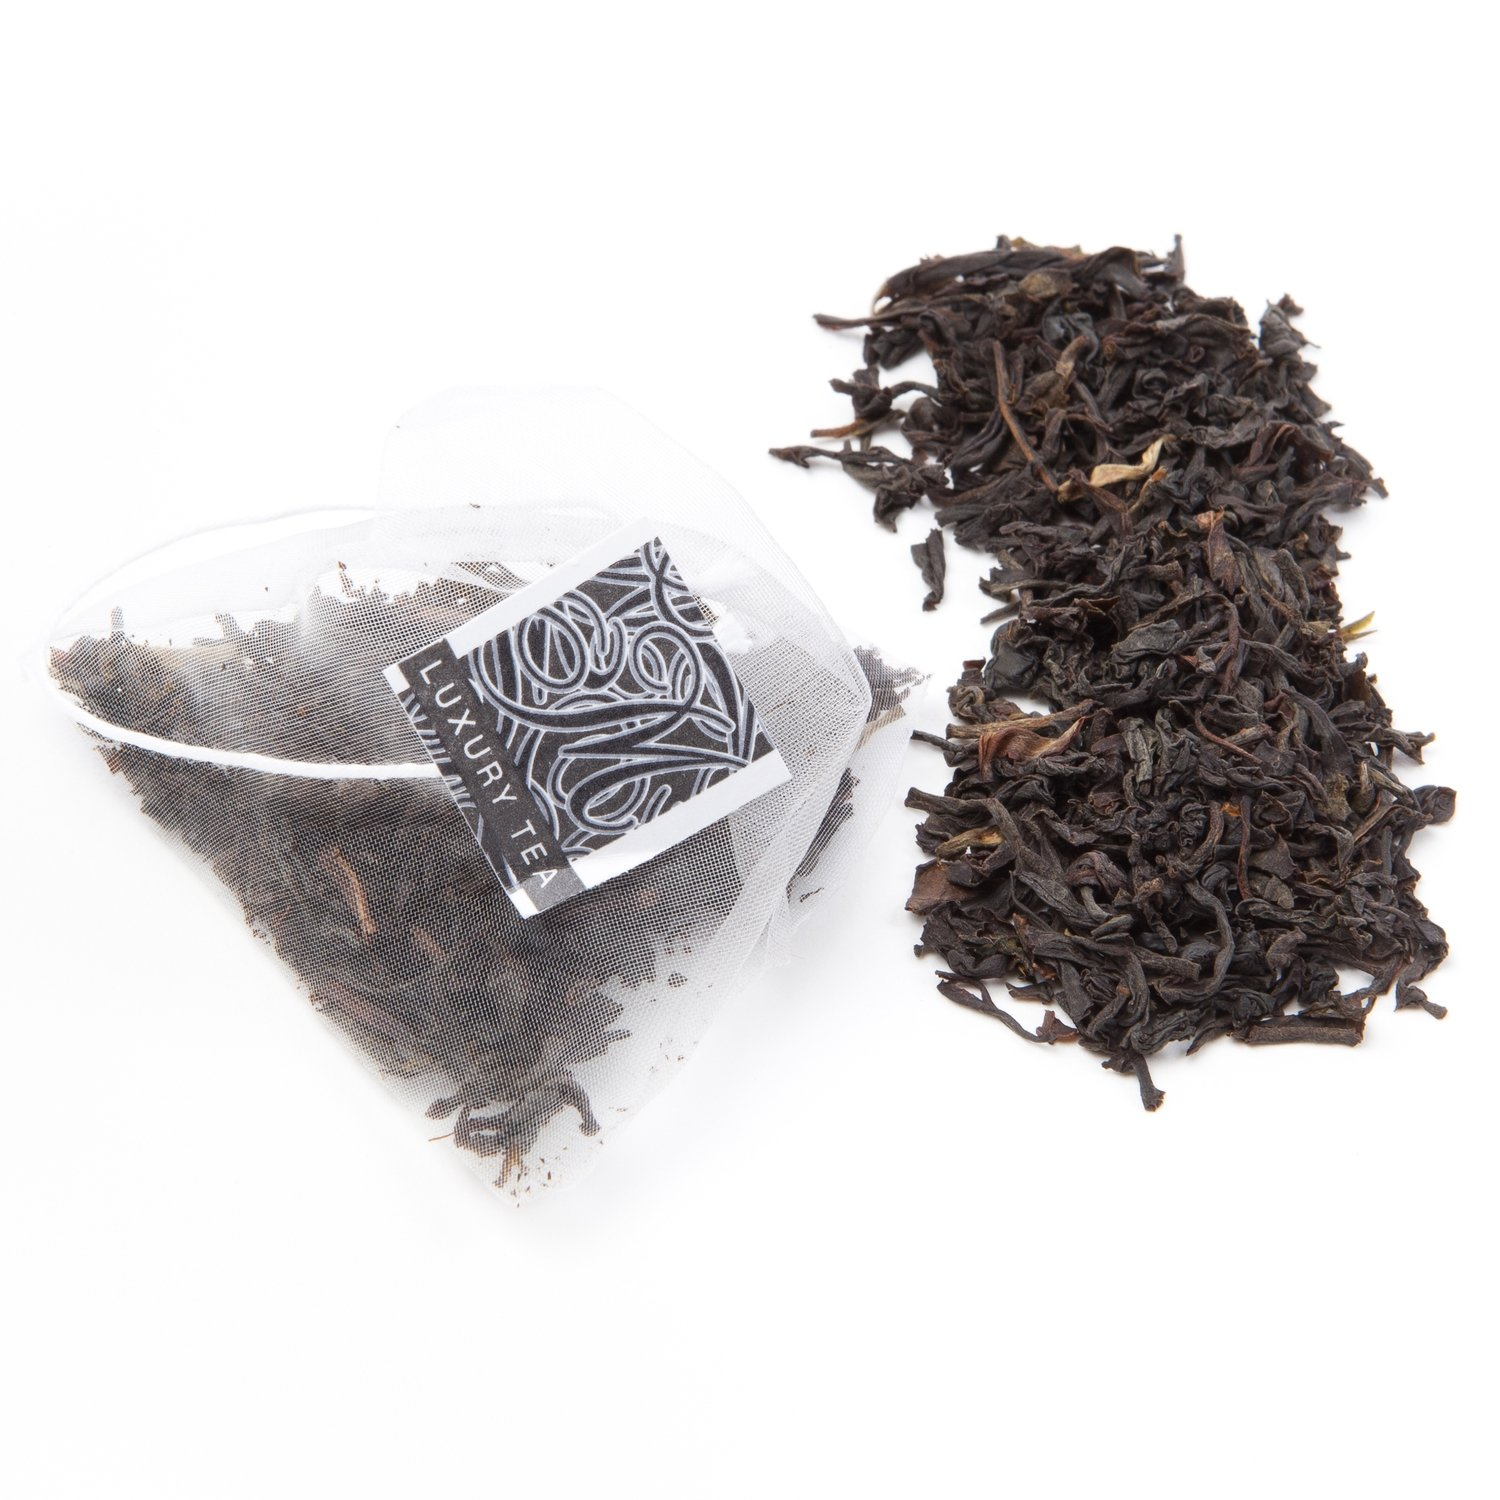 English Breakfast Tea - Caffeine Free